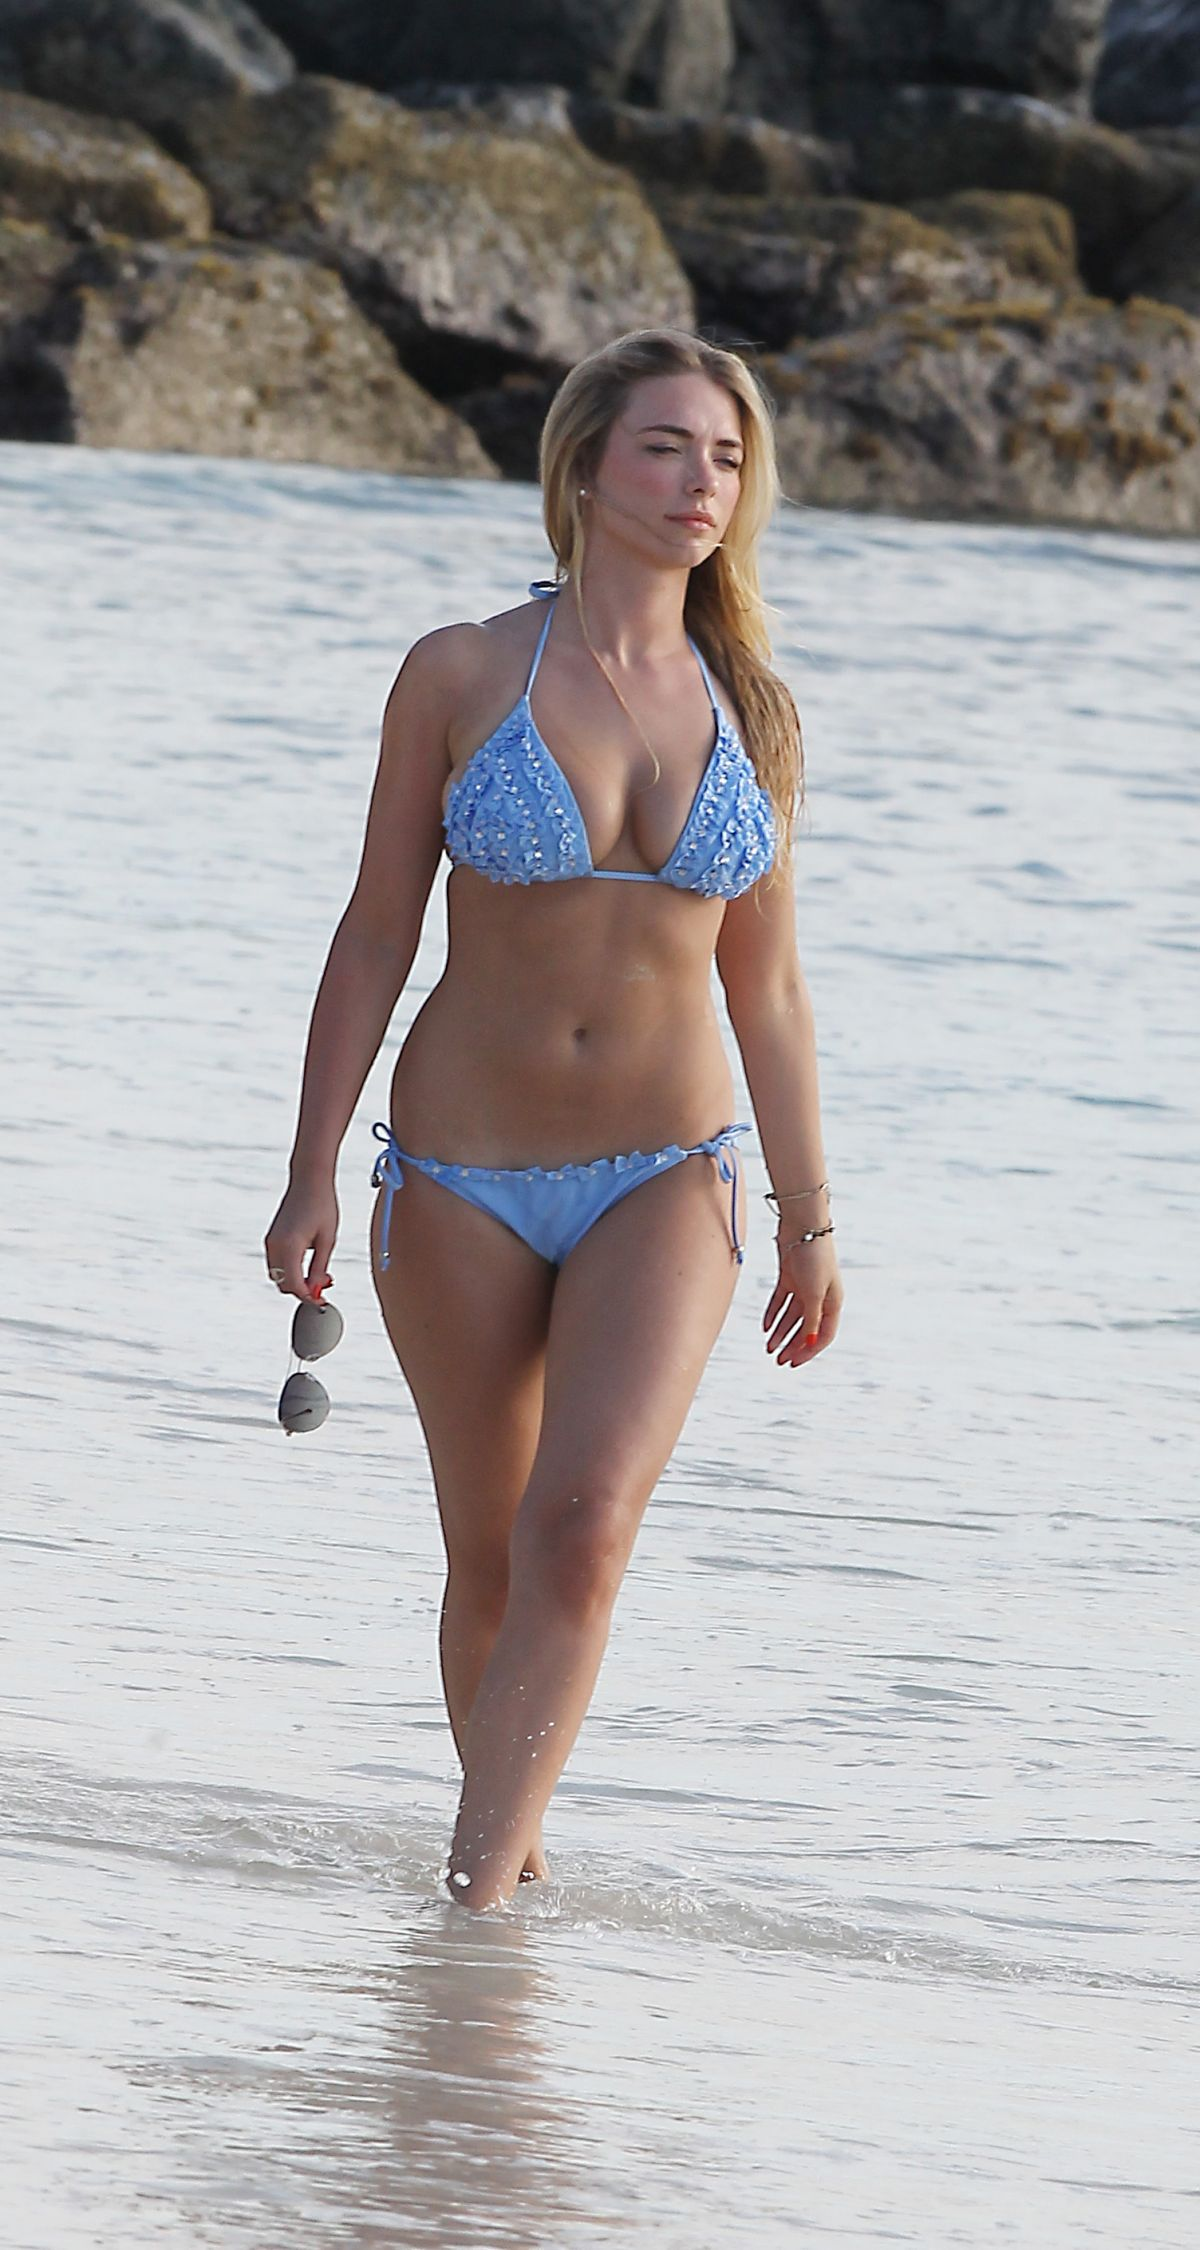 APRIL SUMMERS i Bikini at a Beach on Holiday in Barbados